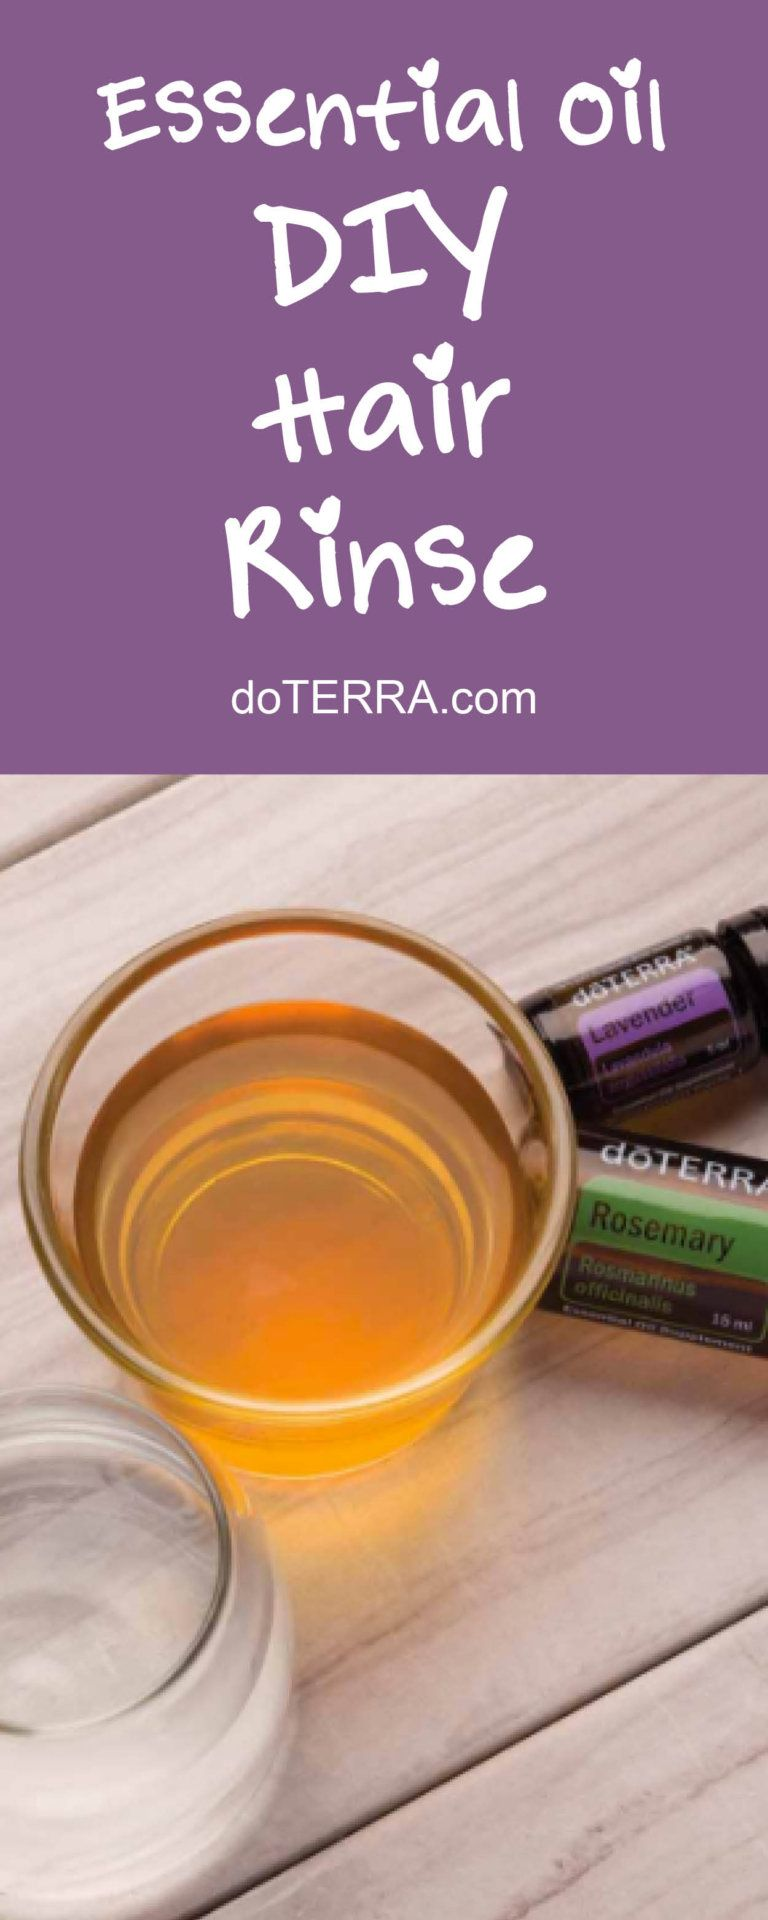 doTERRA Beauty and Personal Care Recipes Best Essential